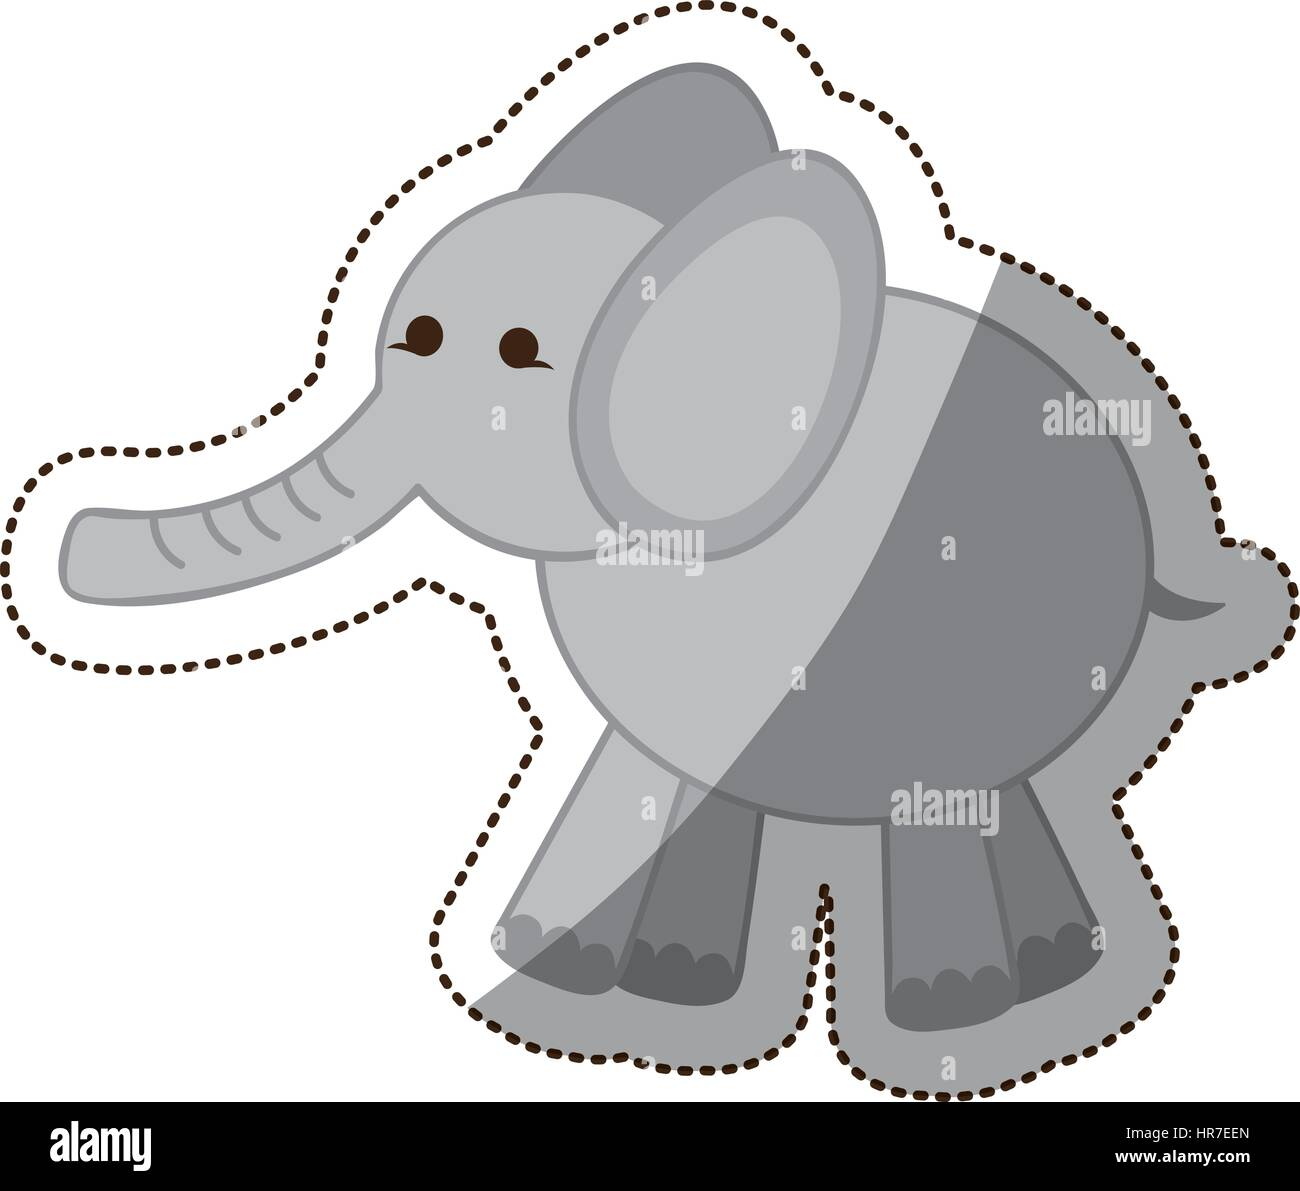 Baby Elephant Cartoon Icon Vector Stock Photos & Baby Elephant ...